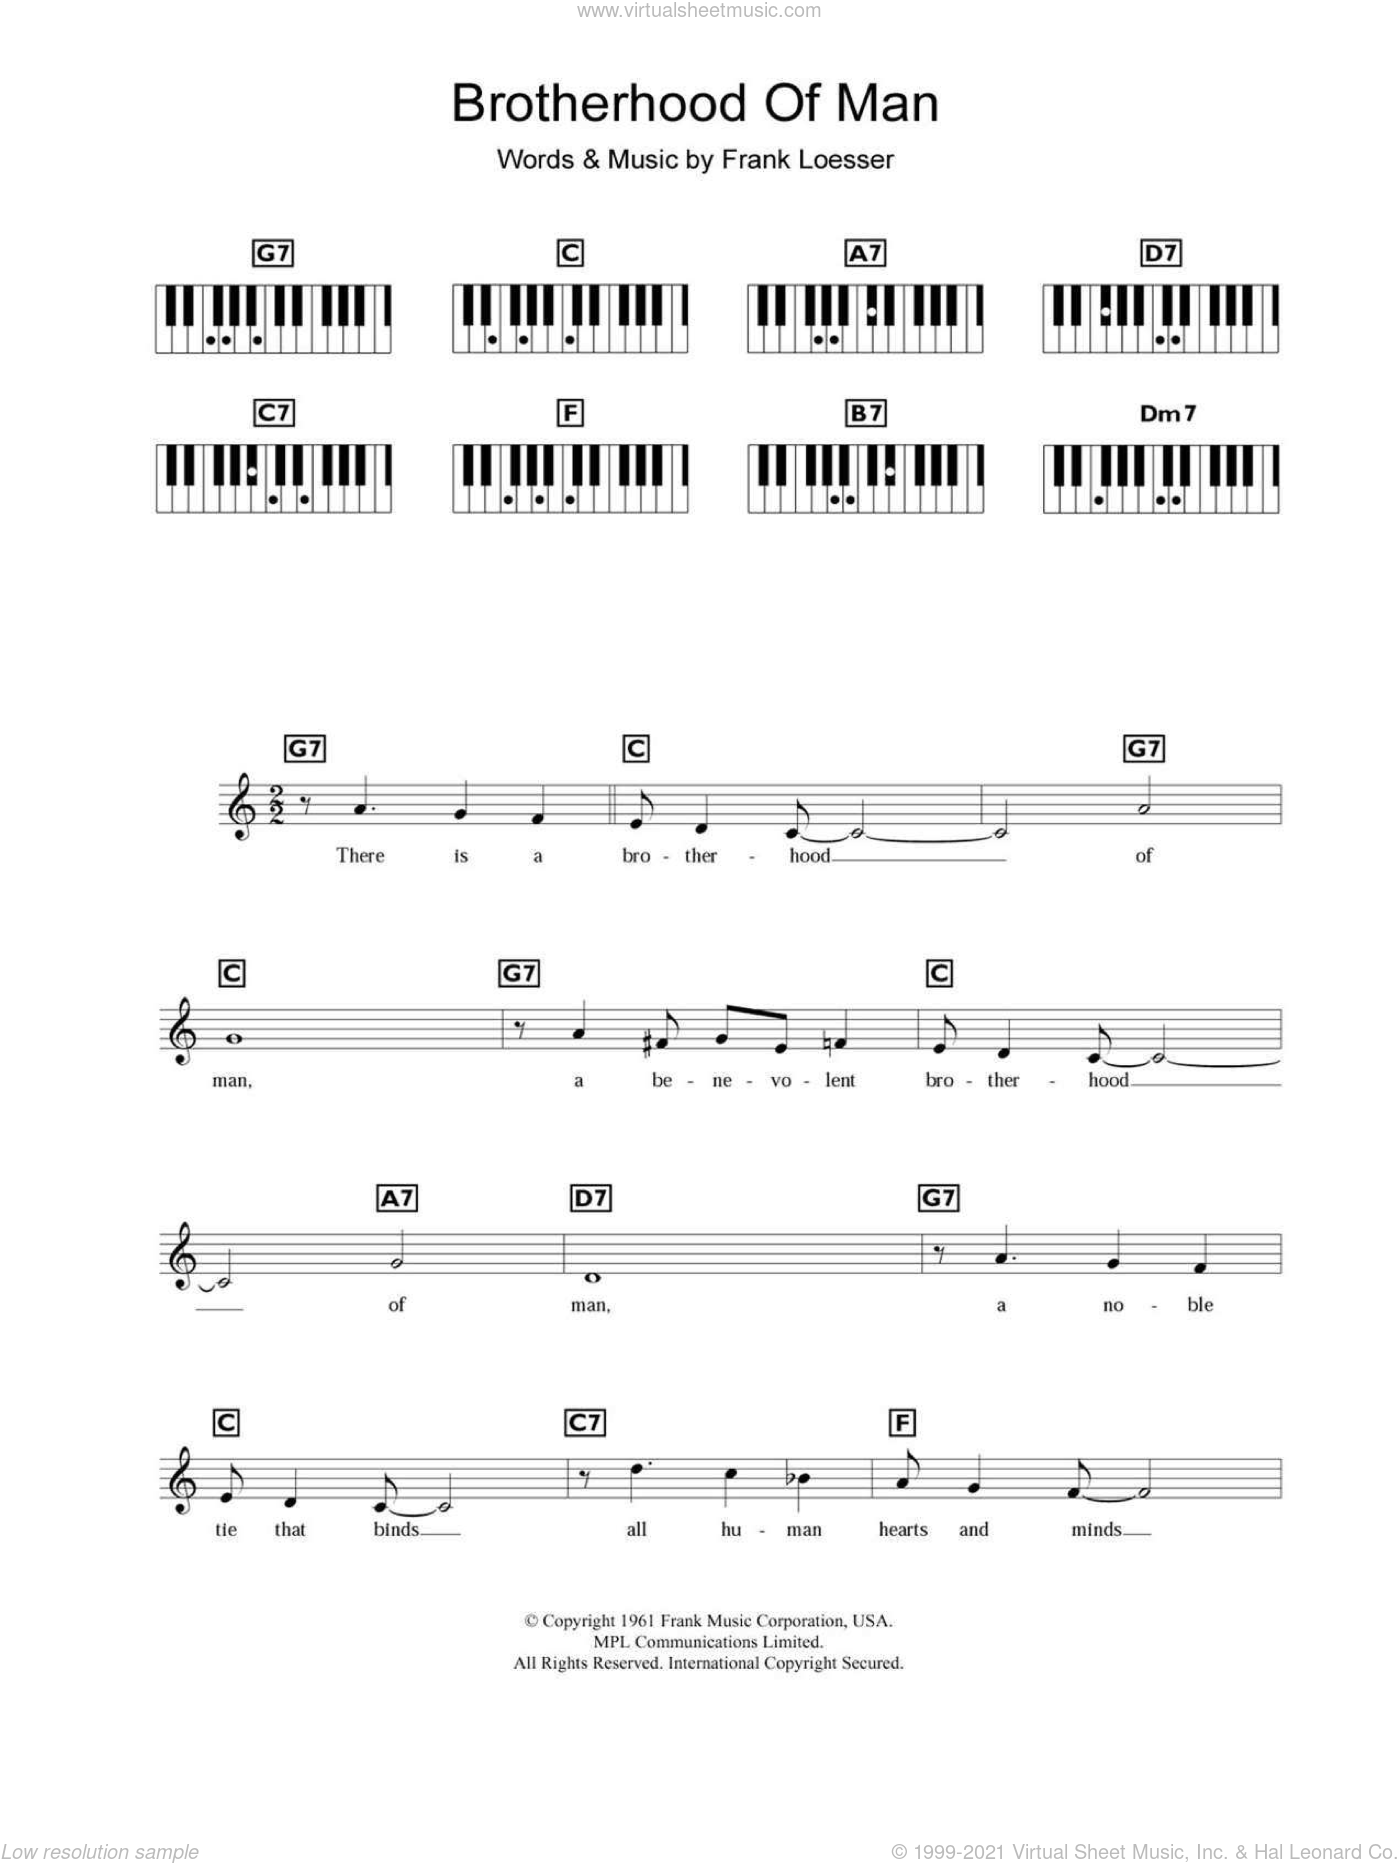 Brotherhood Of Man sheet music for piano solo (chords, lyrics, melody) by Frank Loesser. Score Image Preview.